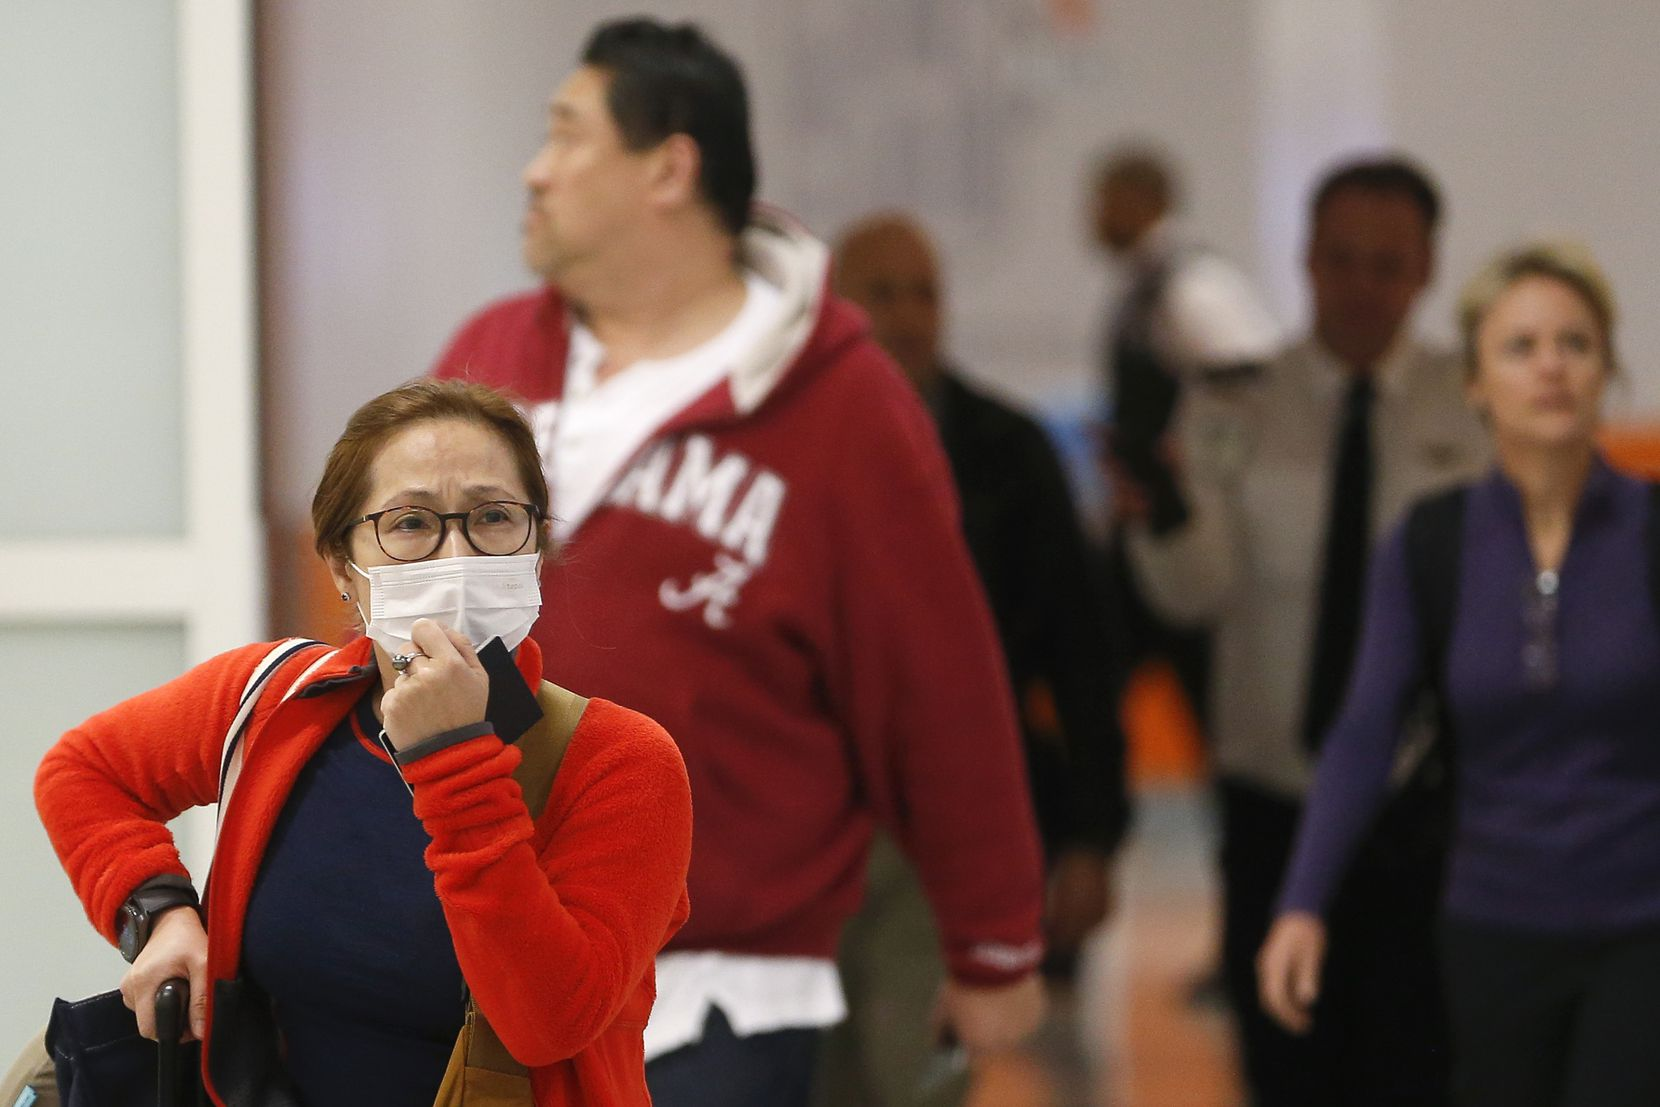 """Vinnie McKinzie of Plano arrived Tuesday at DFW International Airport after a flight home from Hong Kong. """"I bought masks before I went,"""" McKenzie said. """"All sensible people were wearing them."""""""